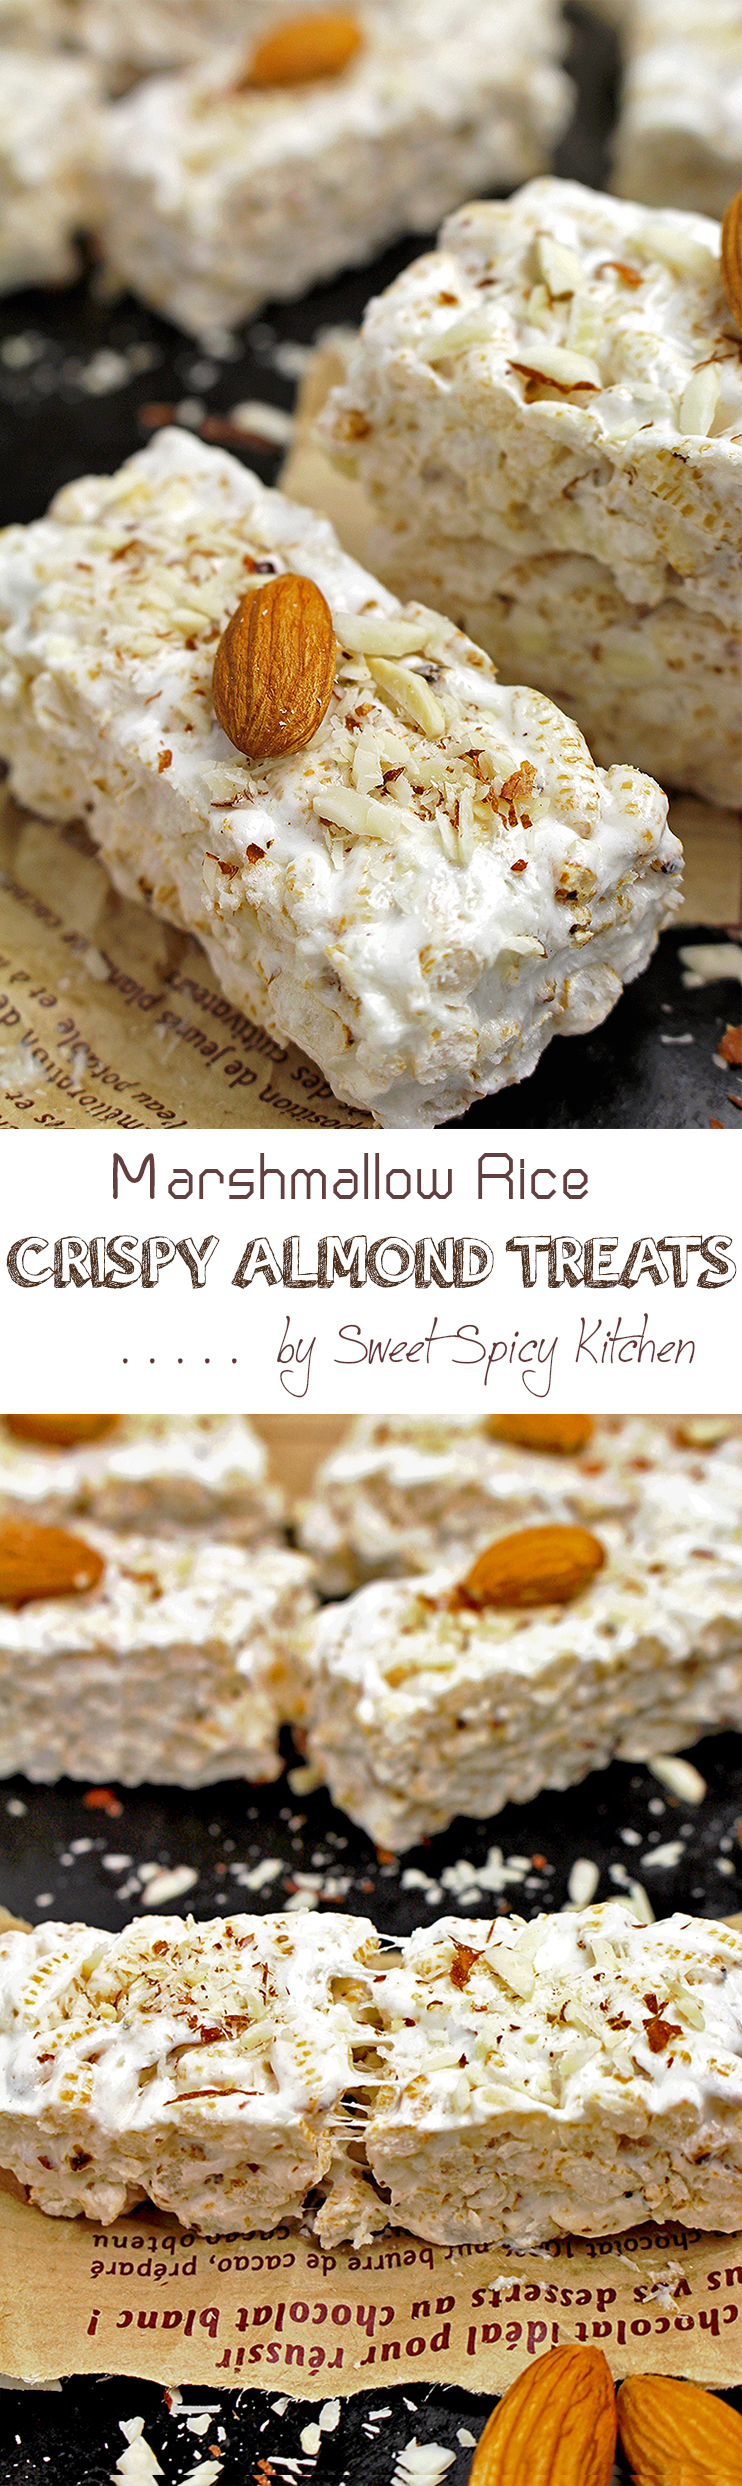 Untitled-3 Marshmallow Rice Crispy Almond Treats